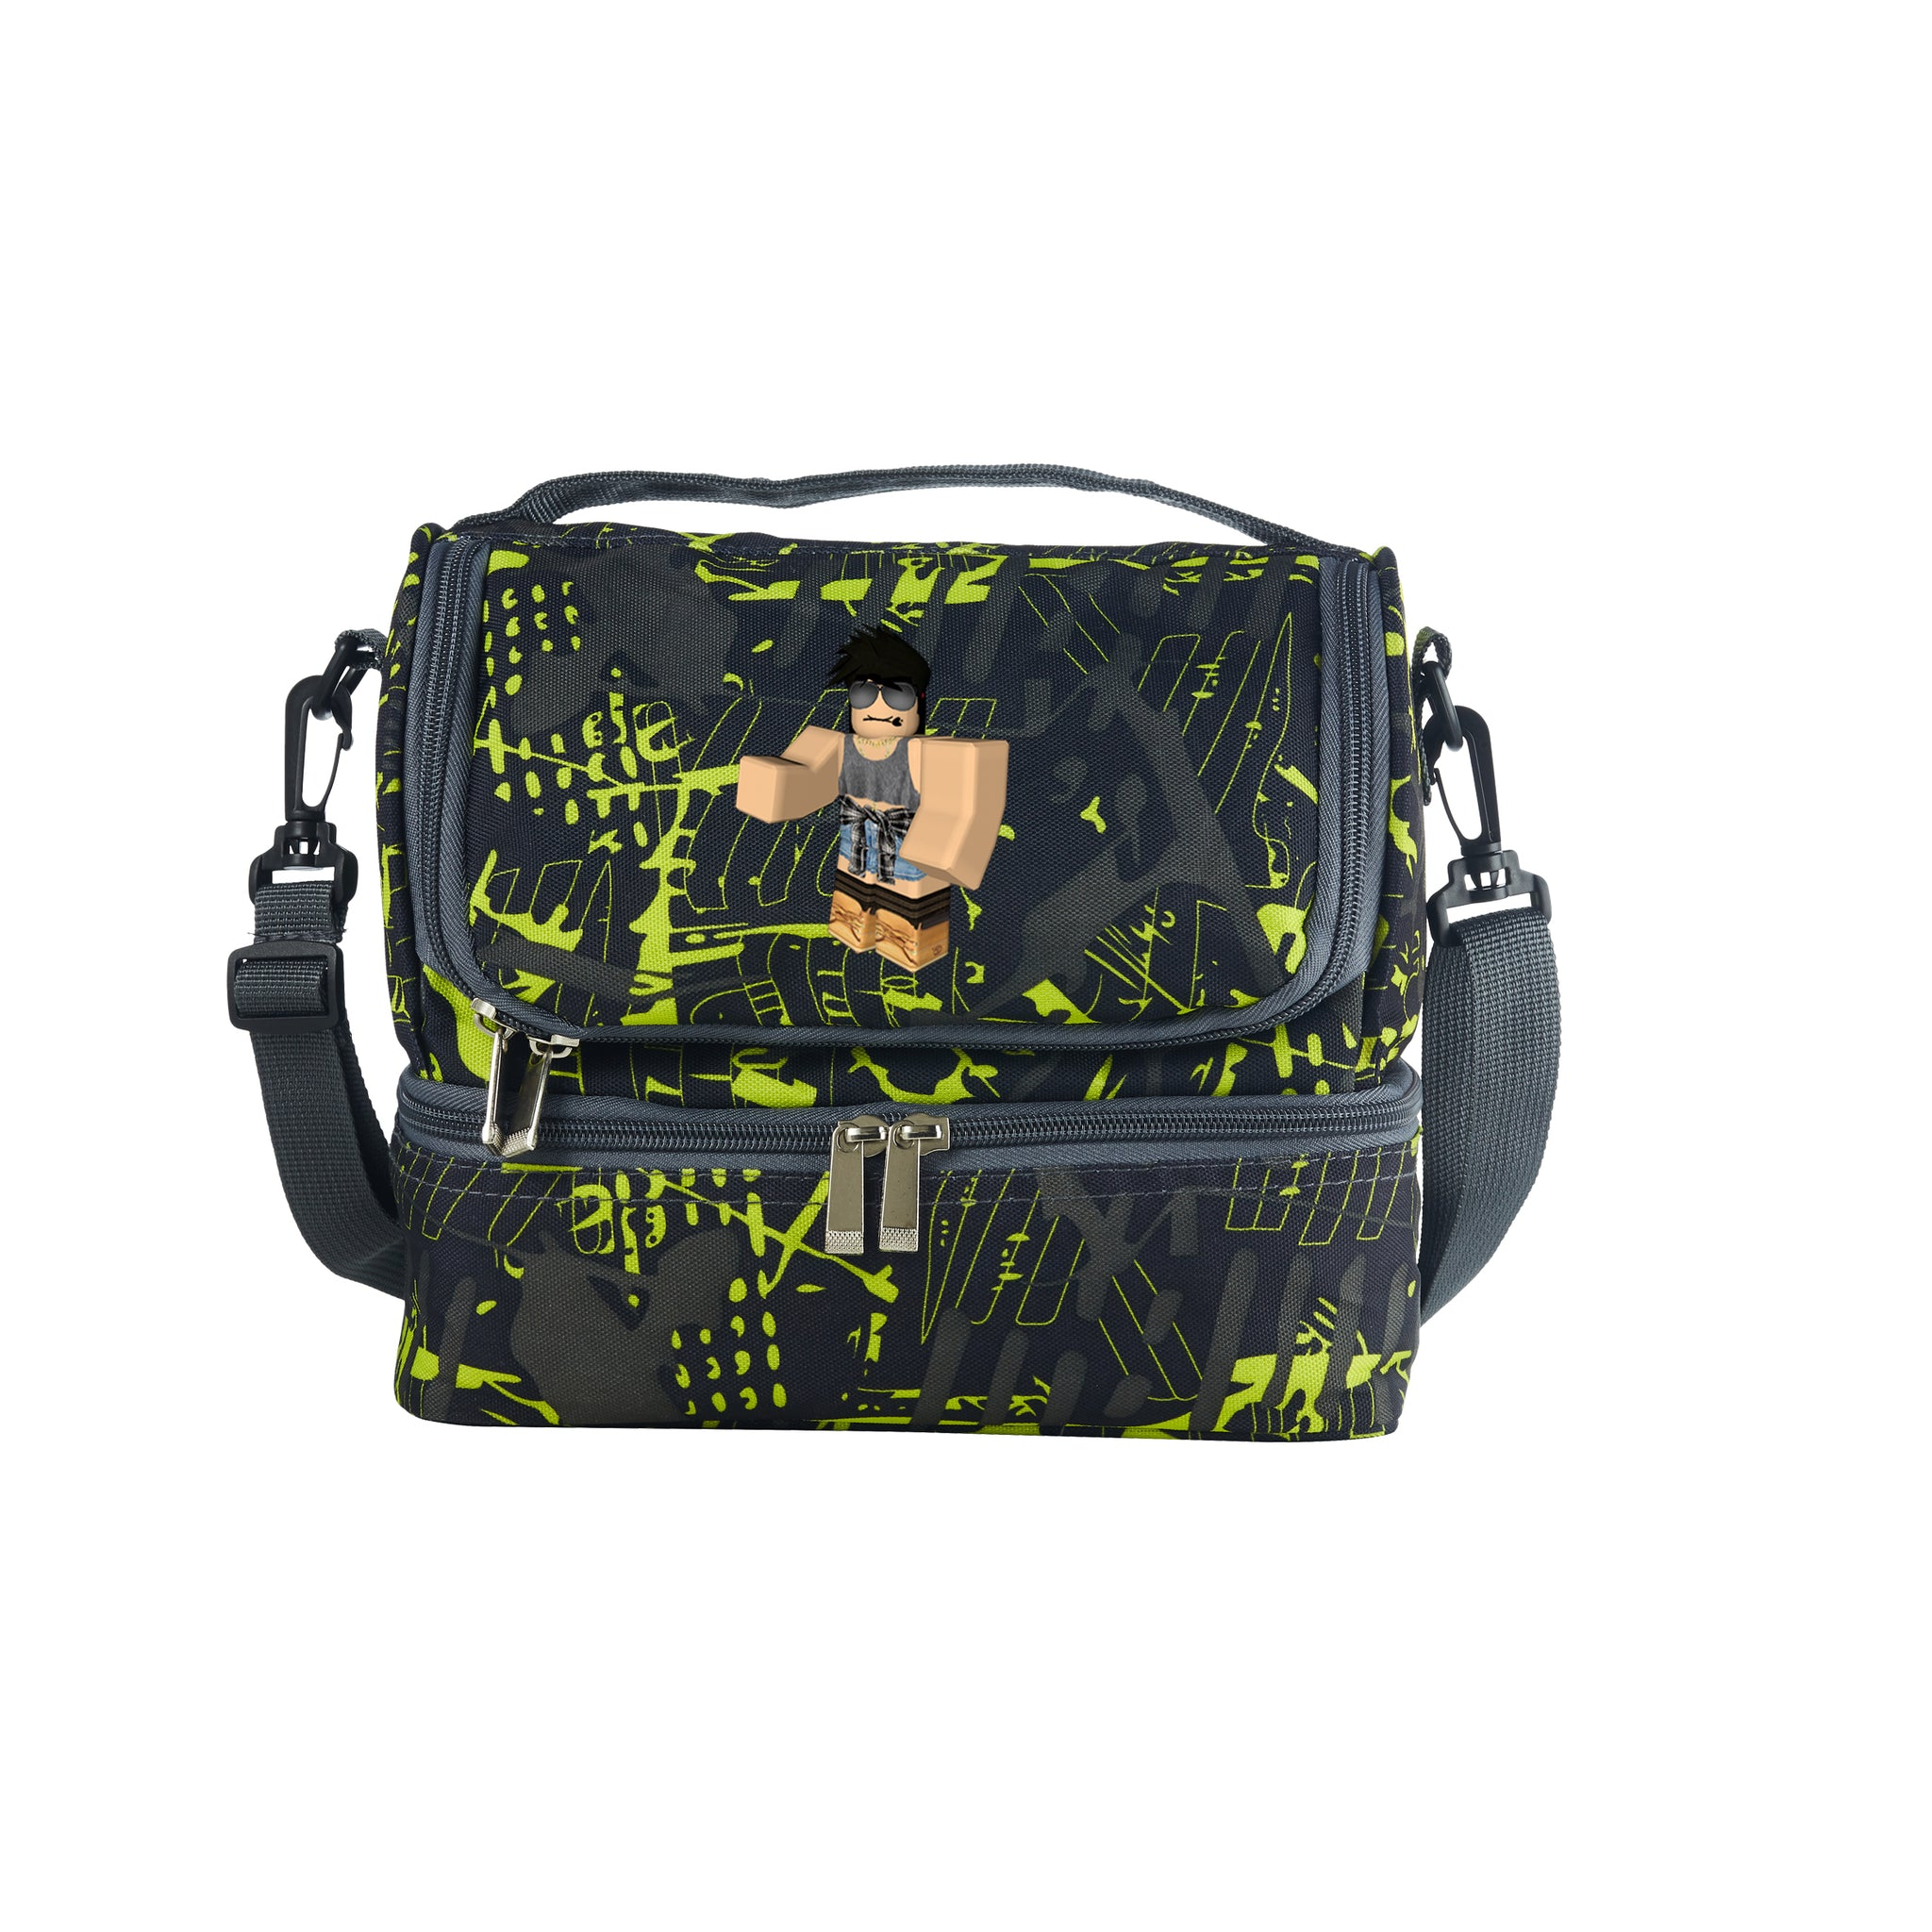 2019 Roblox New Boys Two Compartment Green Graffiti Lunch Bag For School